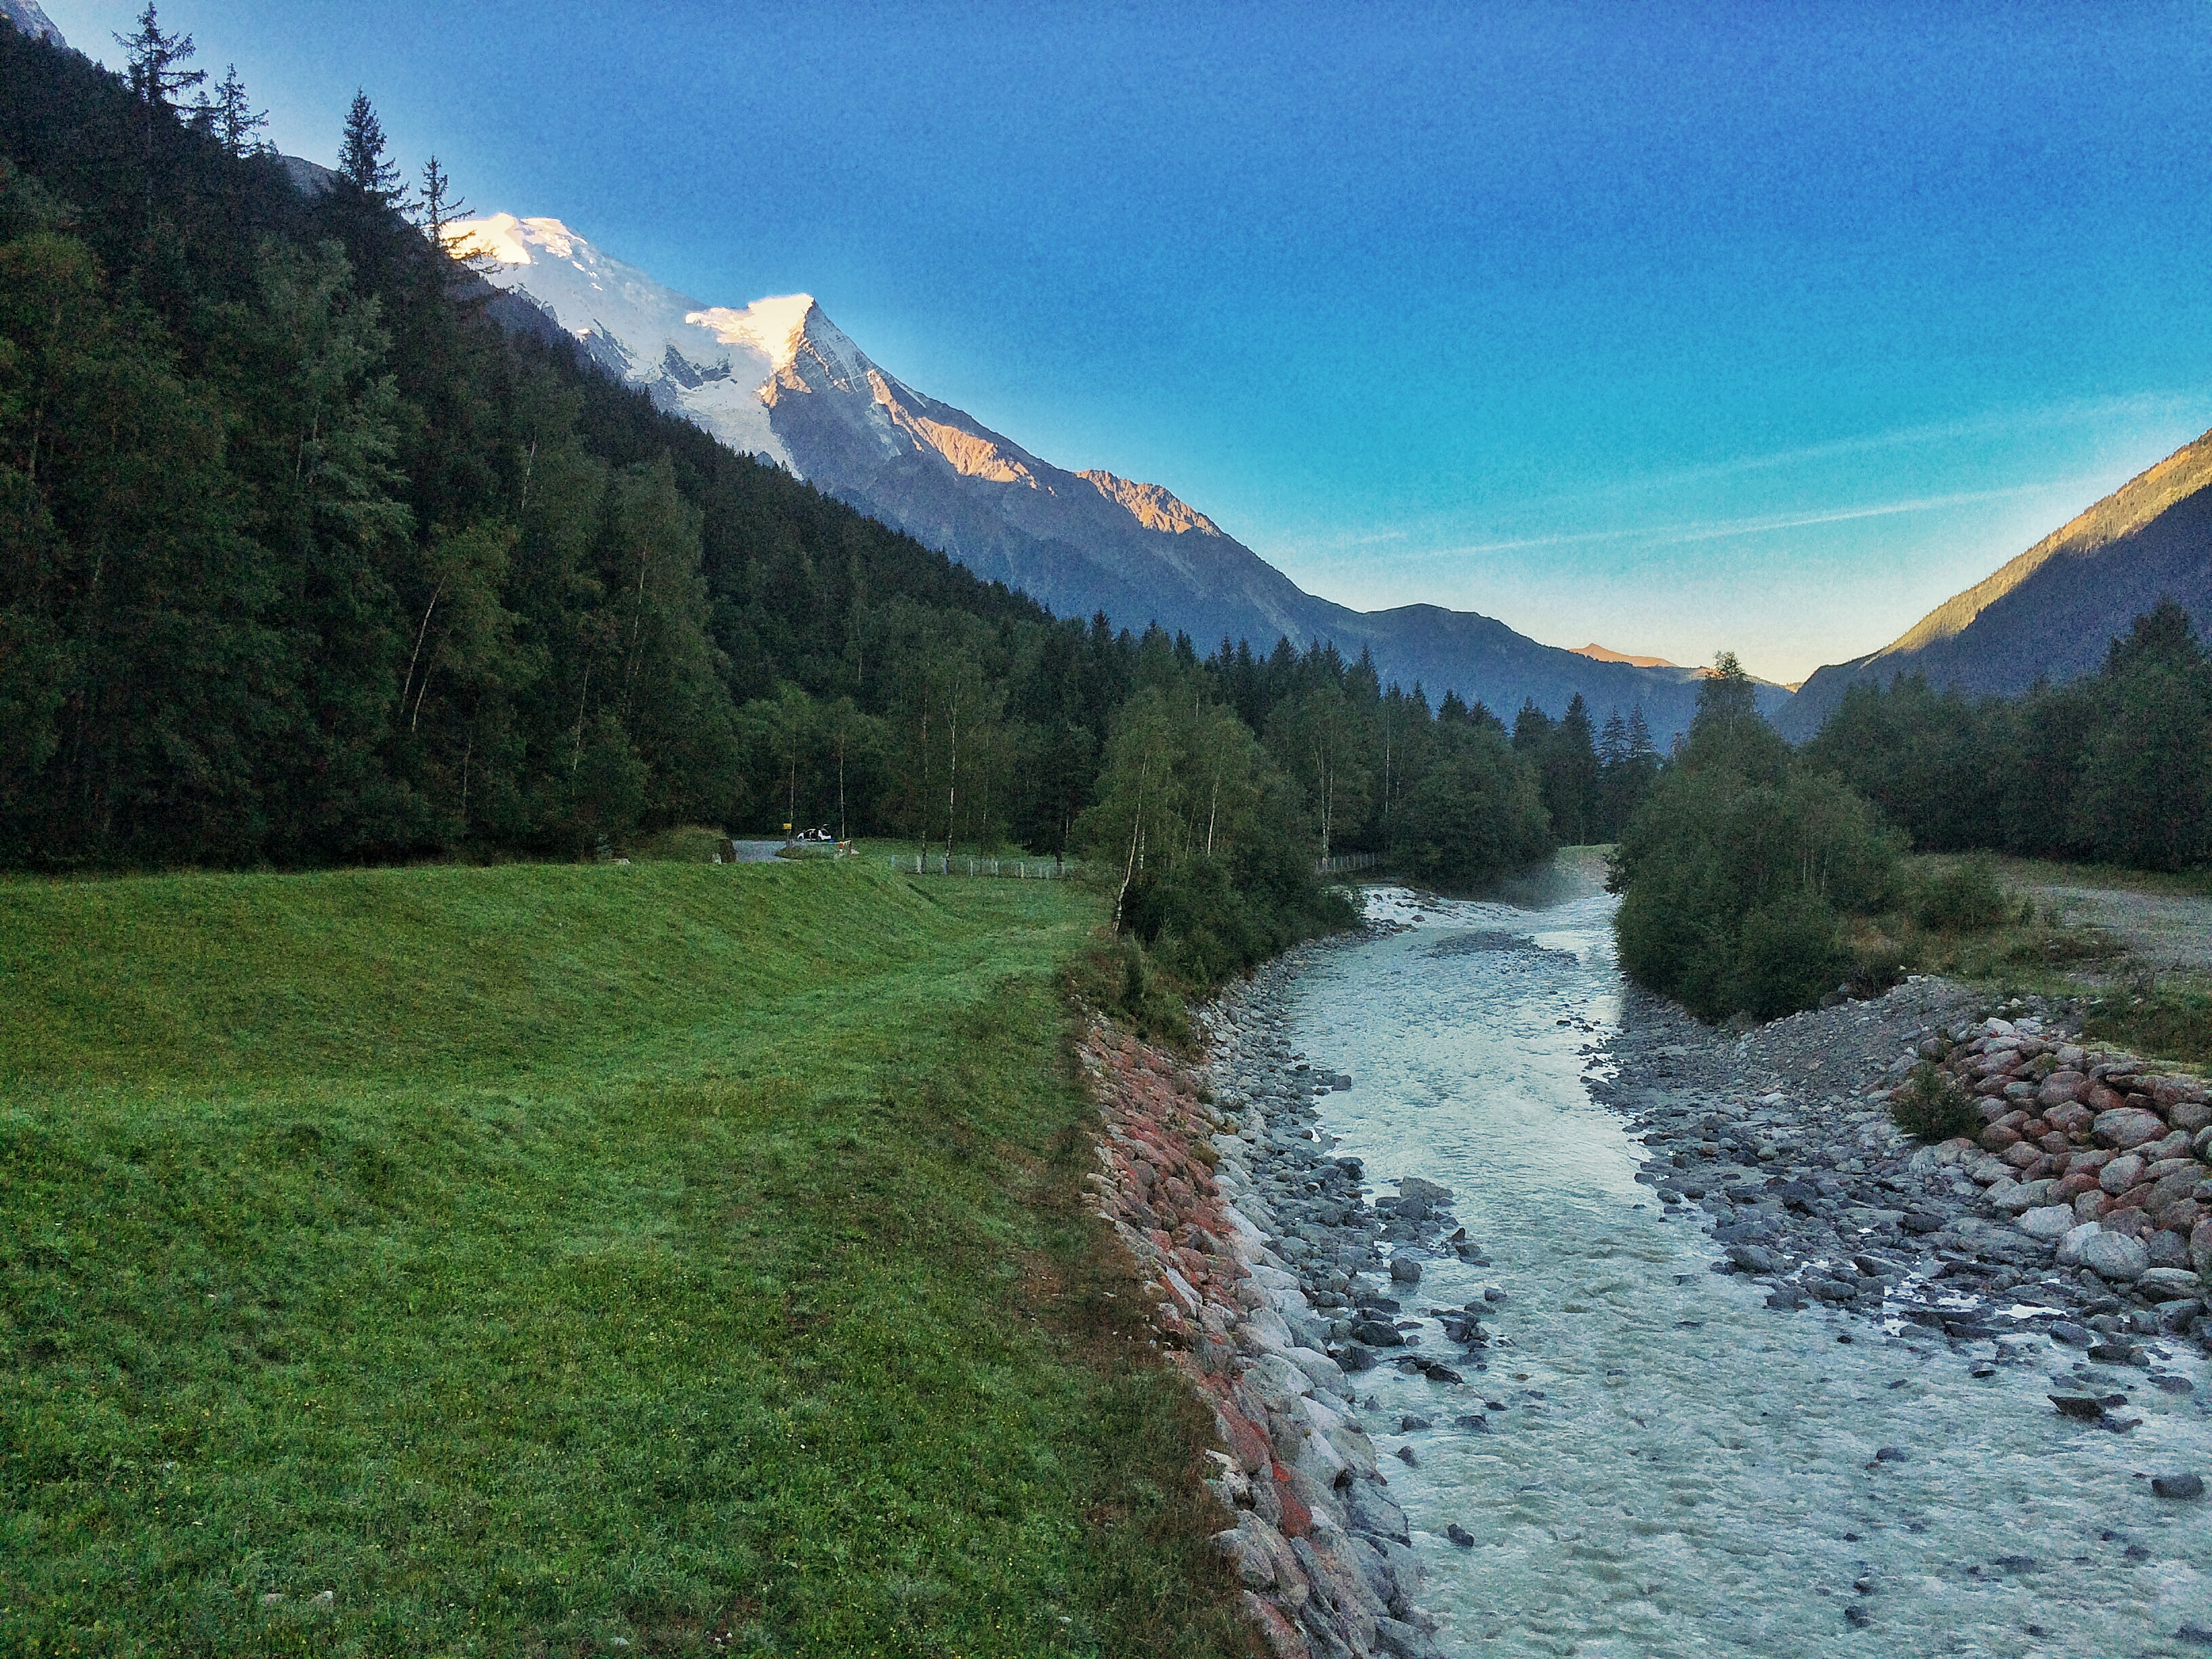 To Finish Strong- My UTMB Race Report